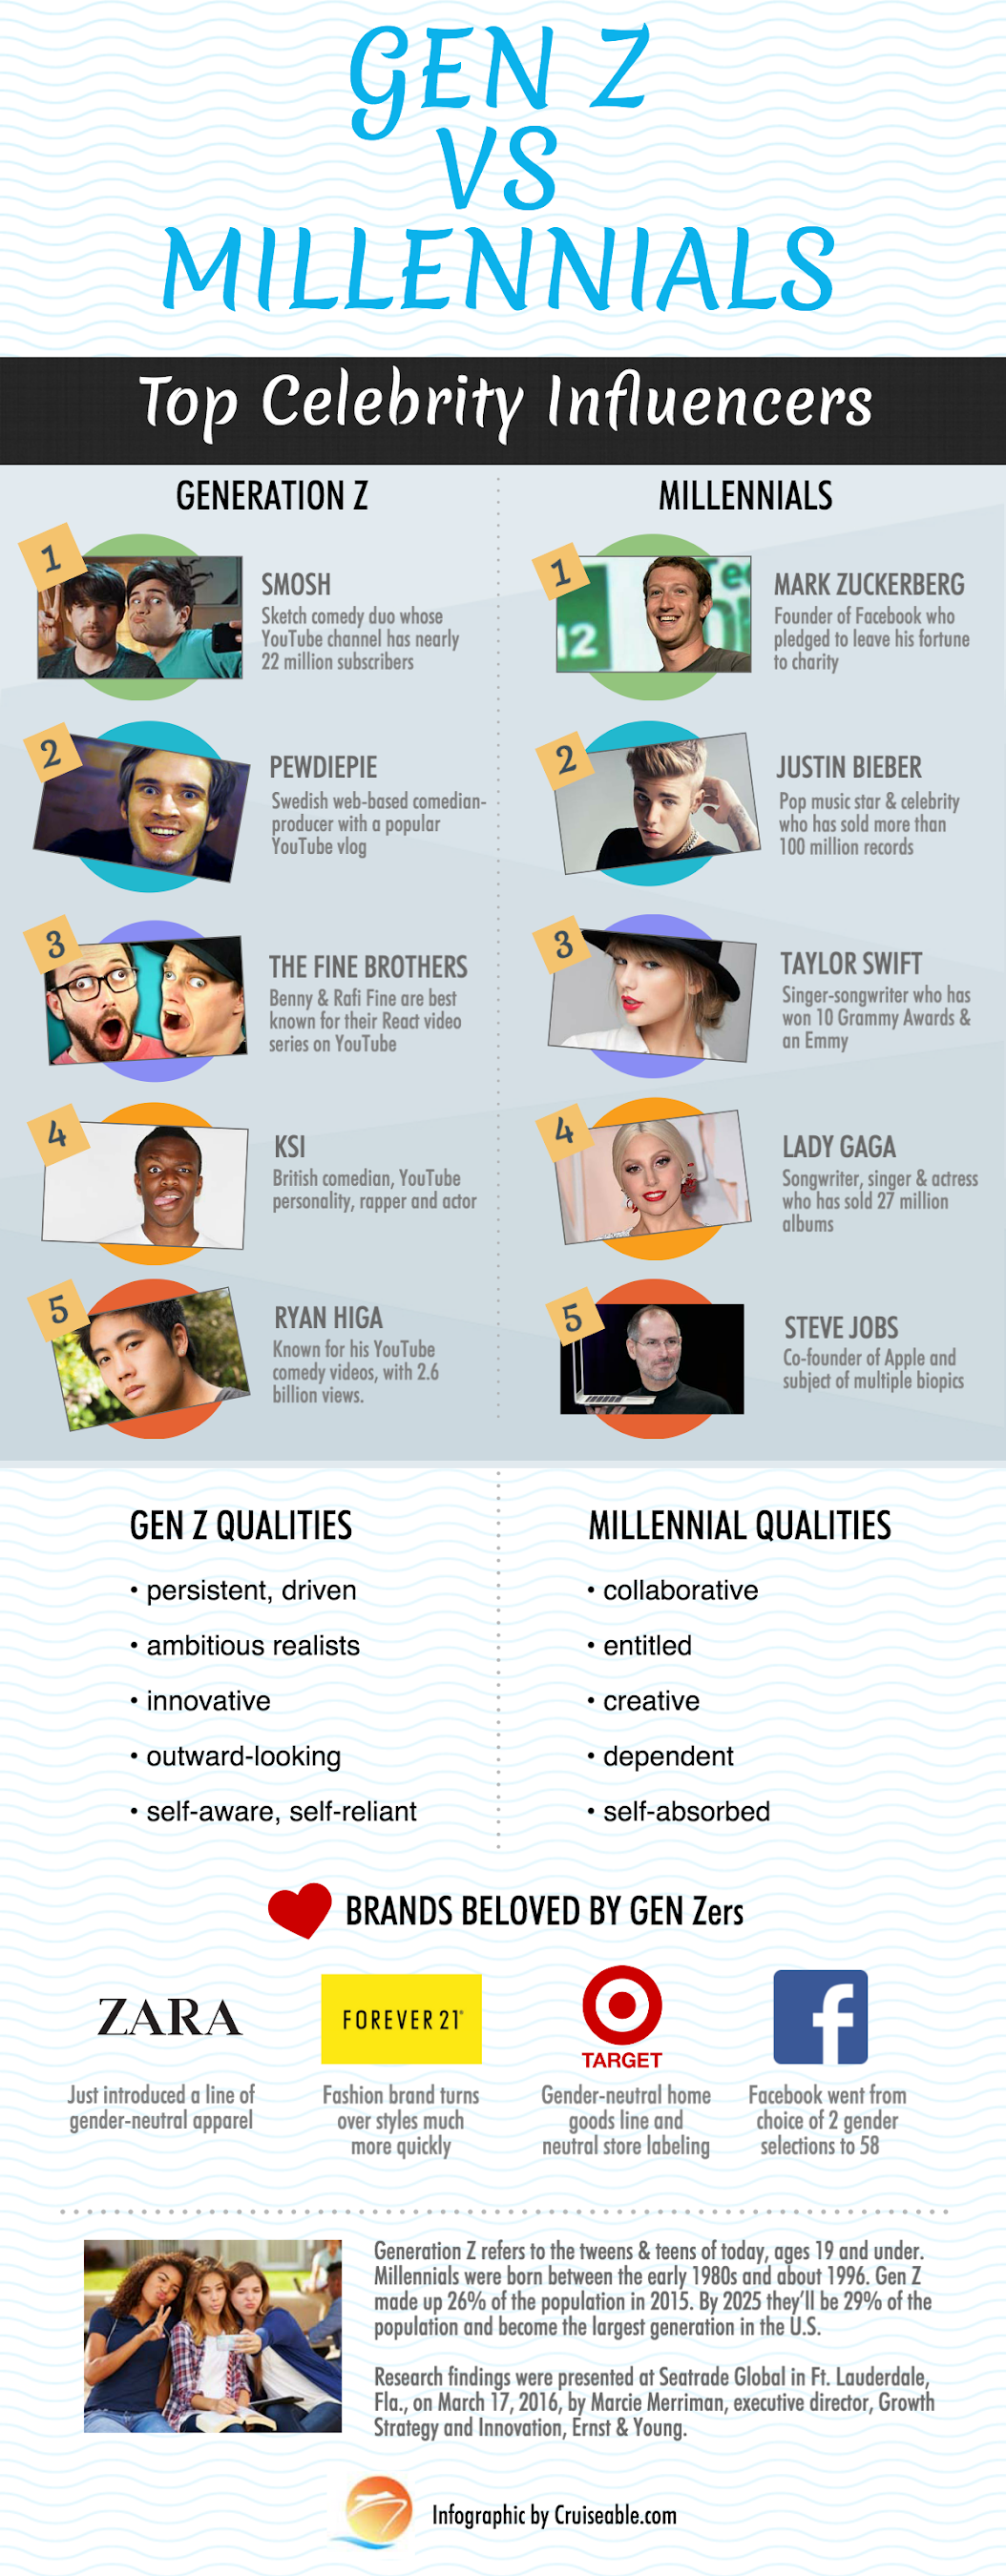 Top 5 Celebrity Influencers Of Generation Z Amp Millennials Infographic Cruiseable